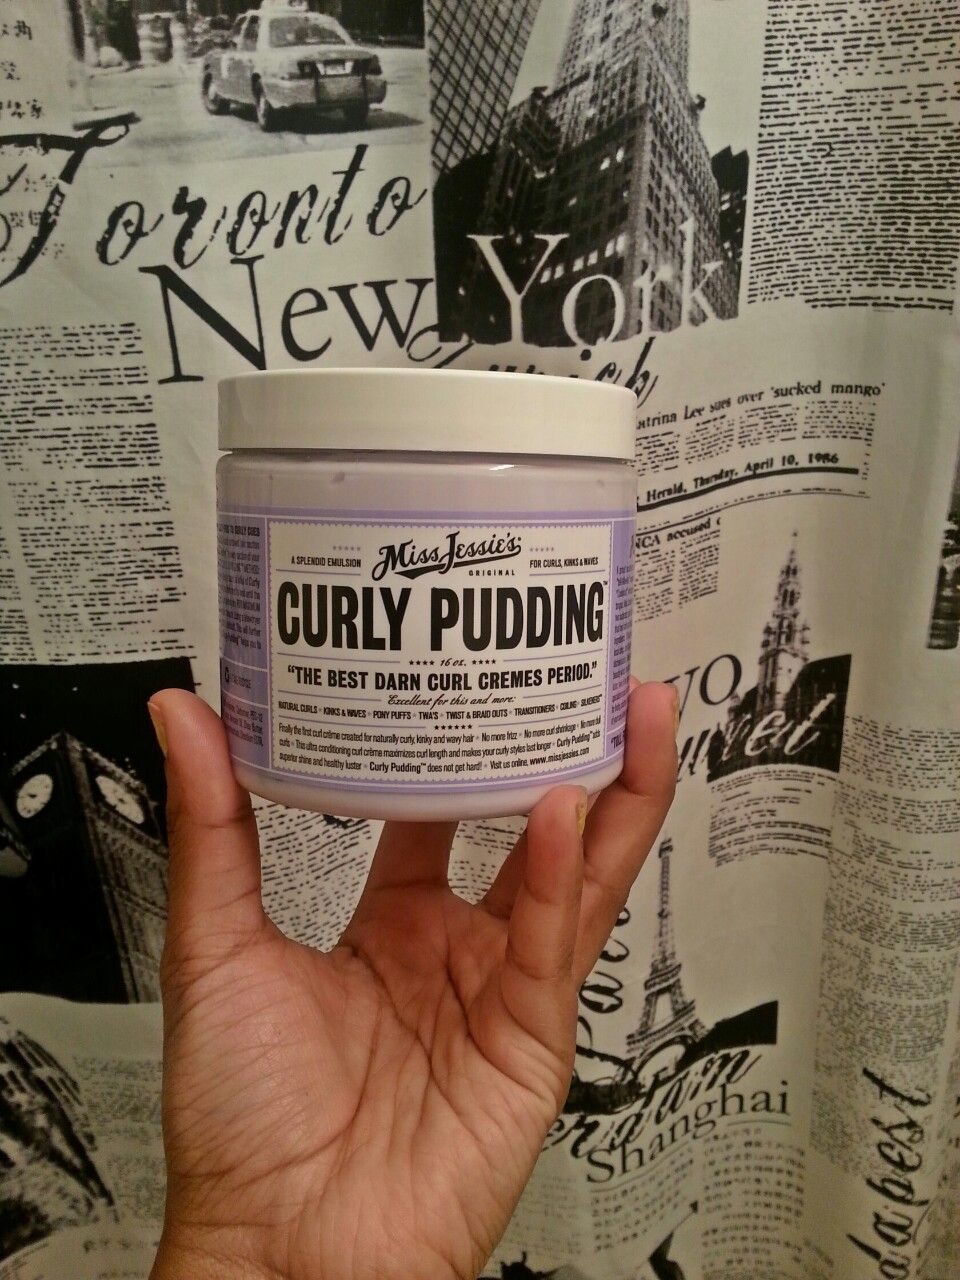 Curly Pudding! #NYC